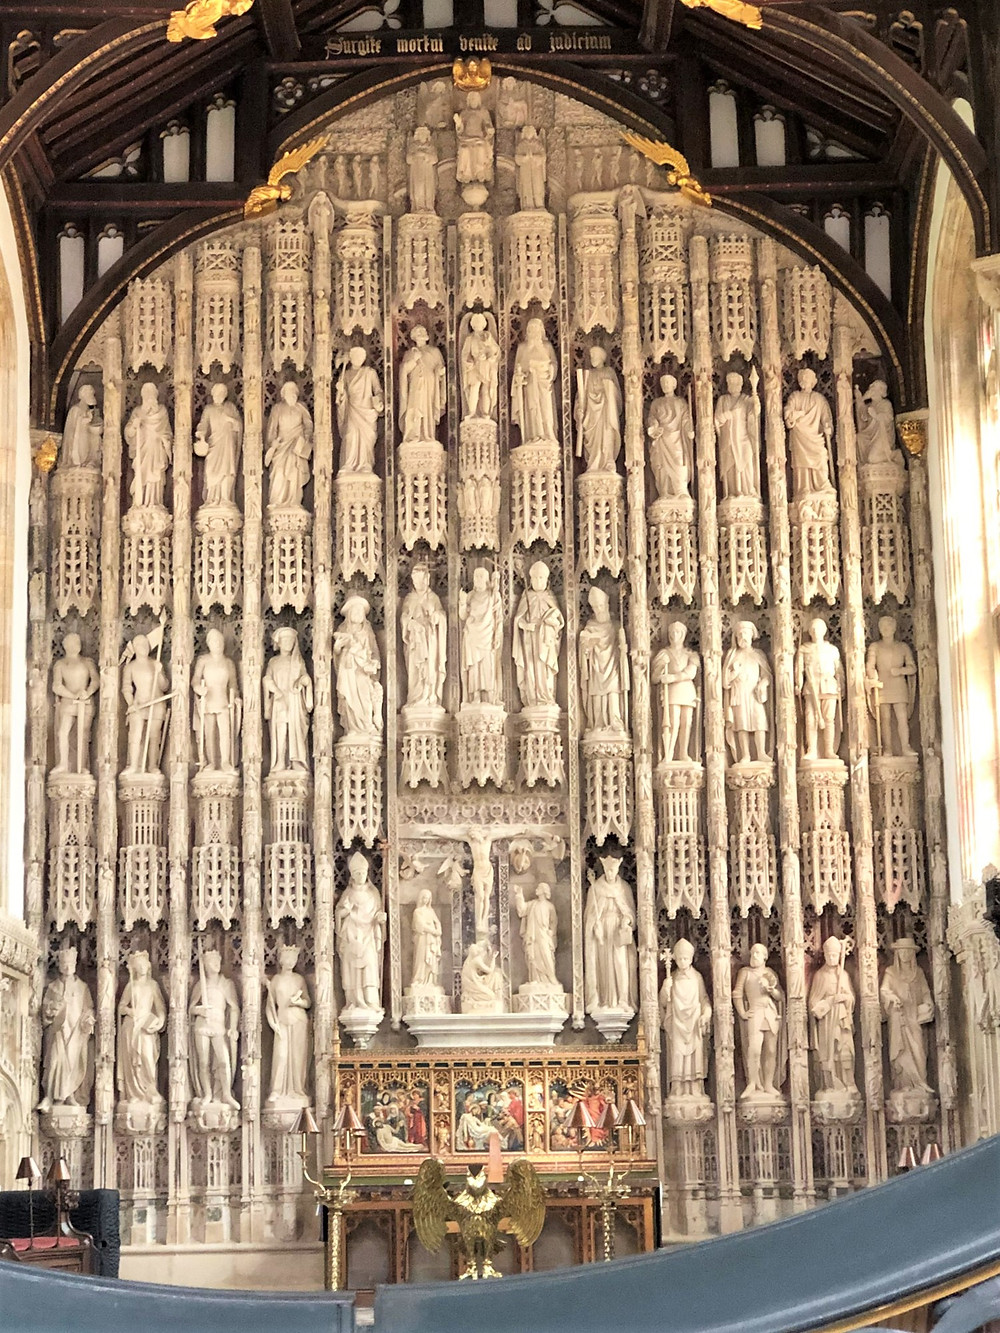 The high altar in the Chapel at All Souls surrounded by statues of saints, bishops and monarchs in All Souls College in Oxford, England